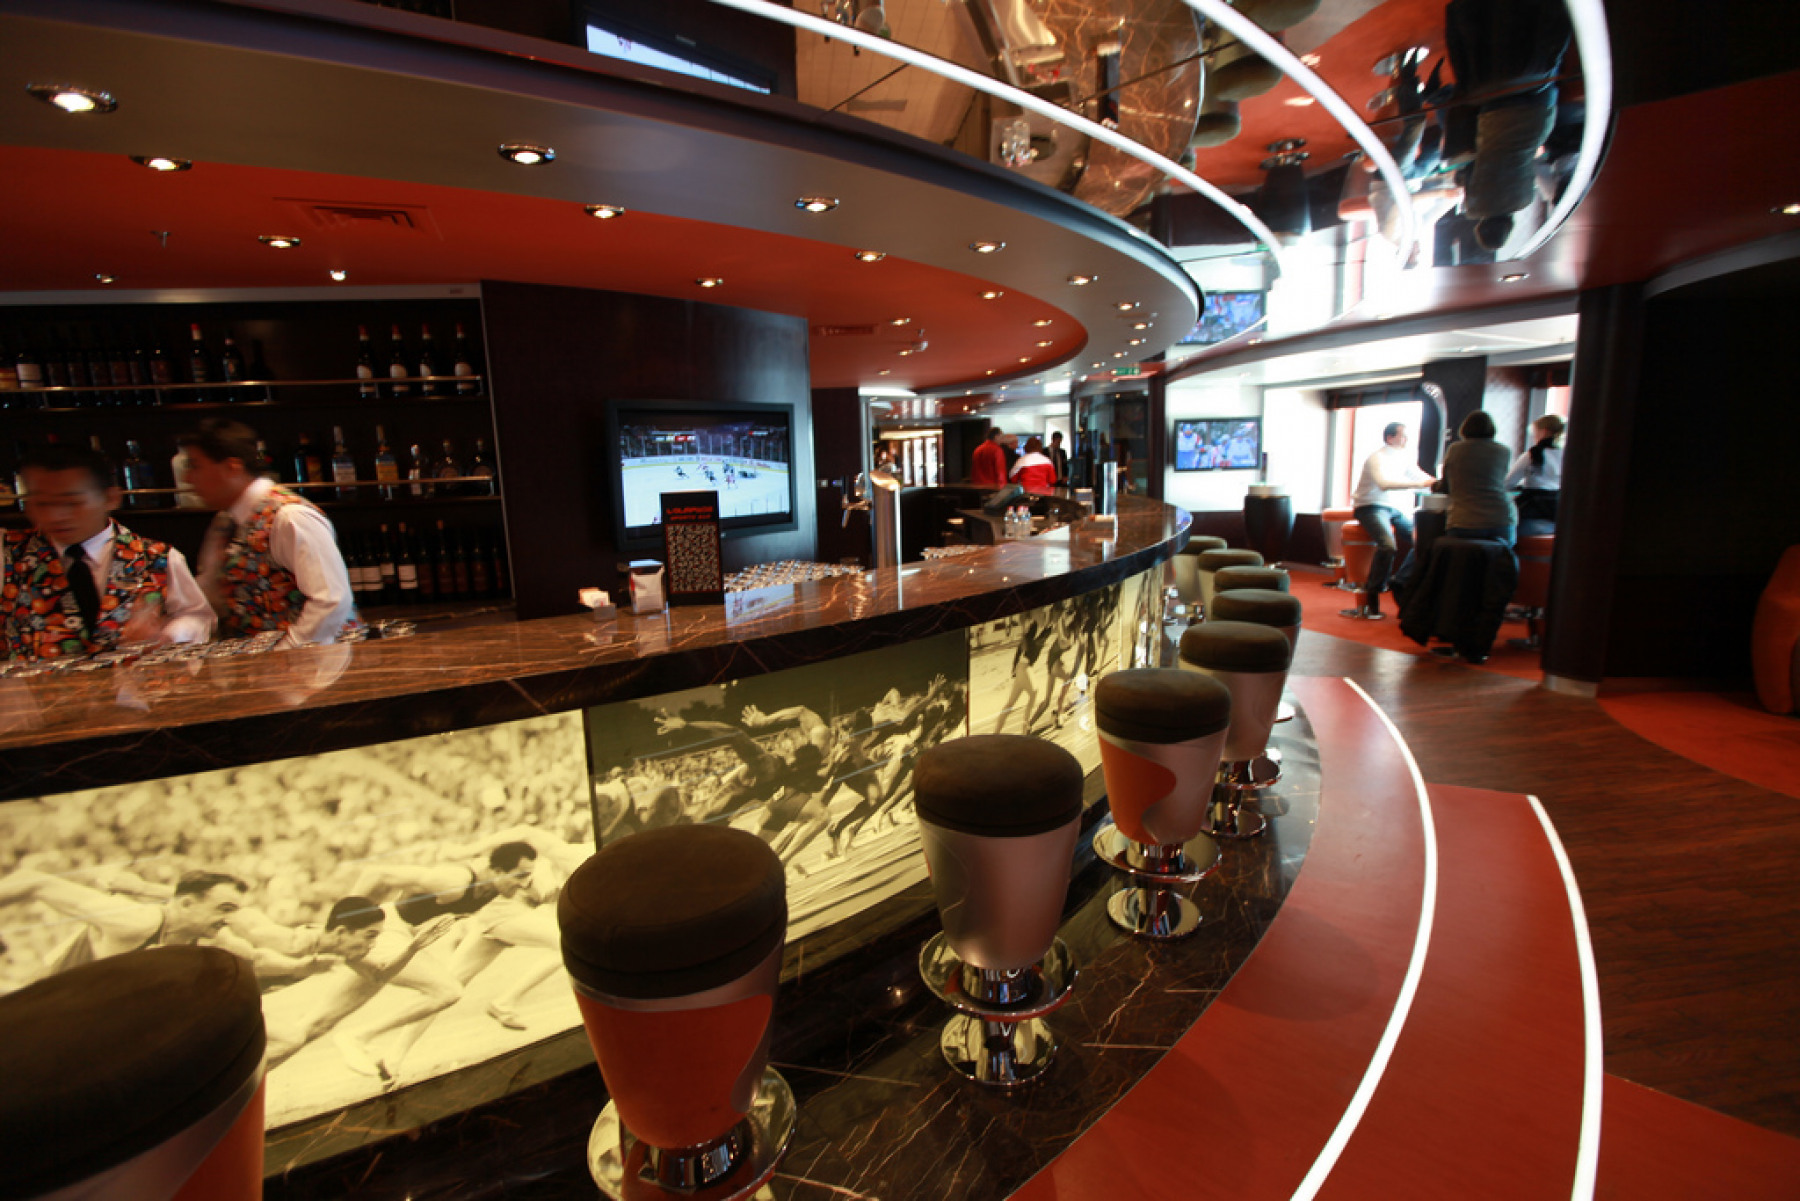 MSC Cruises Musica Class sports bar 3.jpg